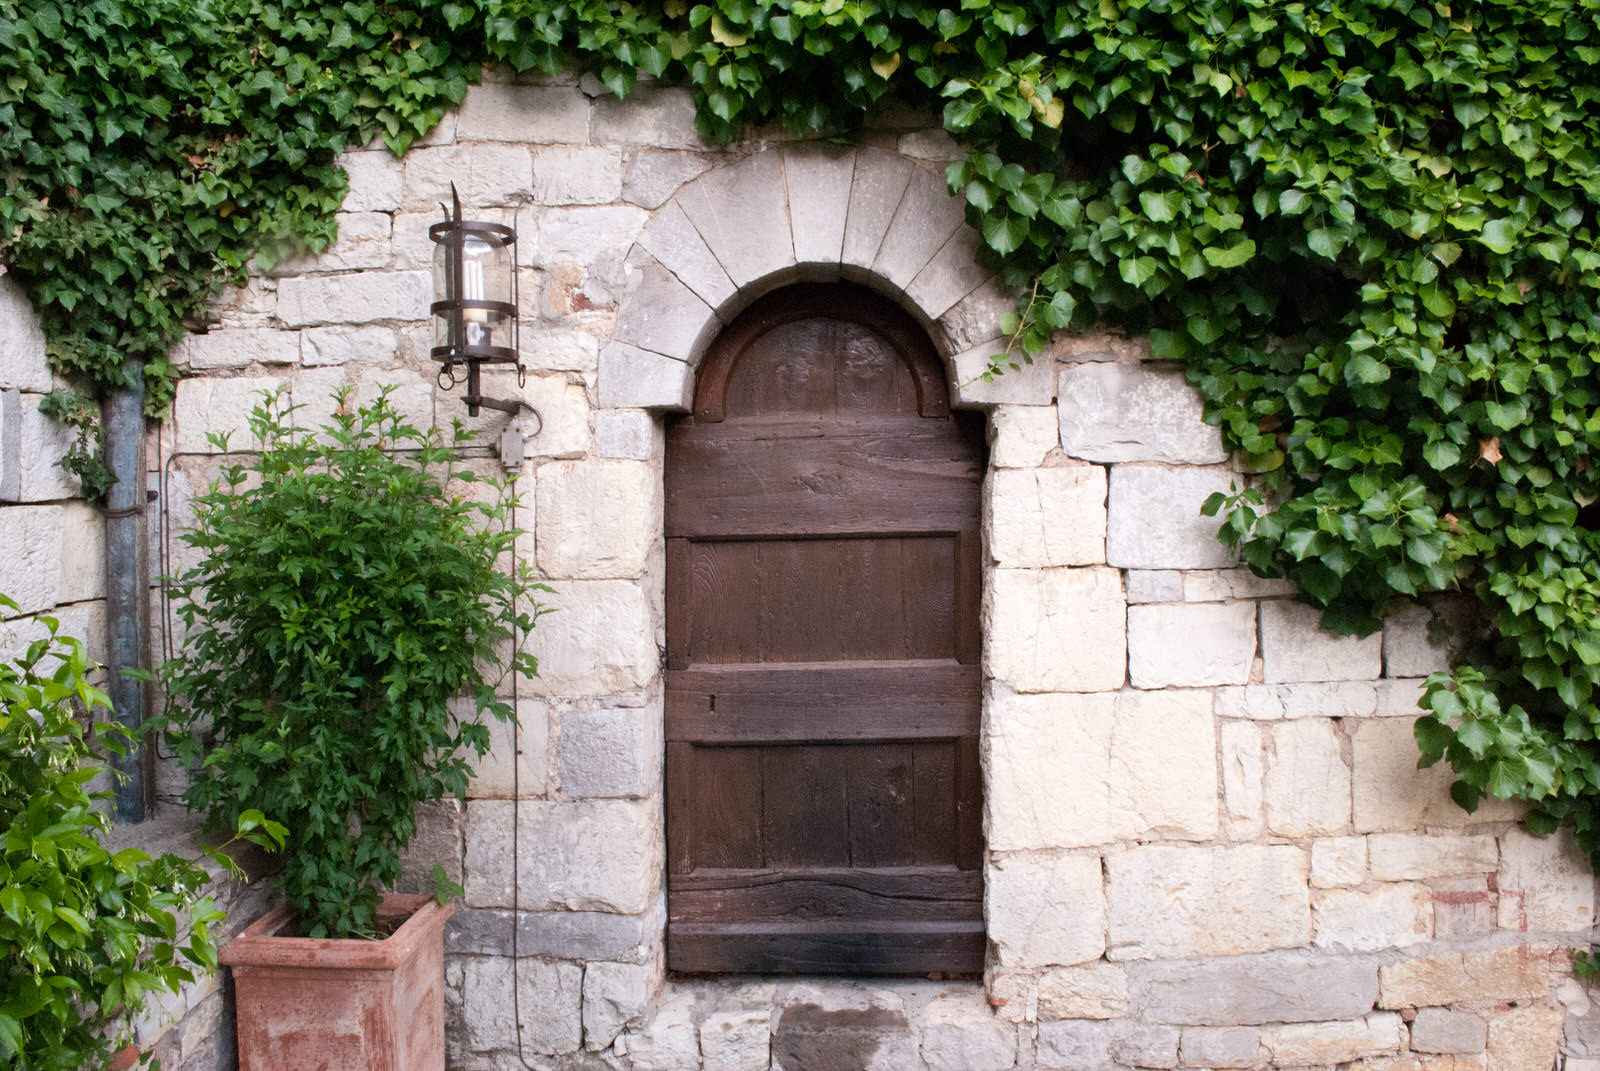 A small door in the corner of the courtyard at Castello di Spaltenna